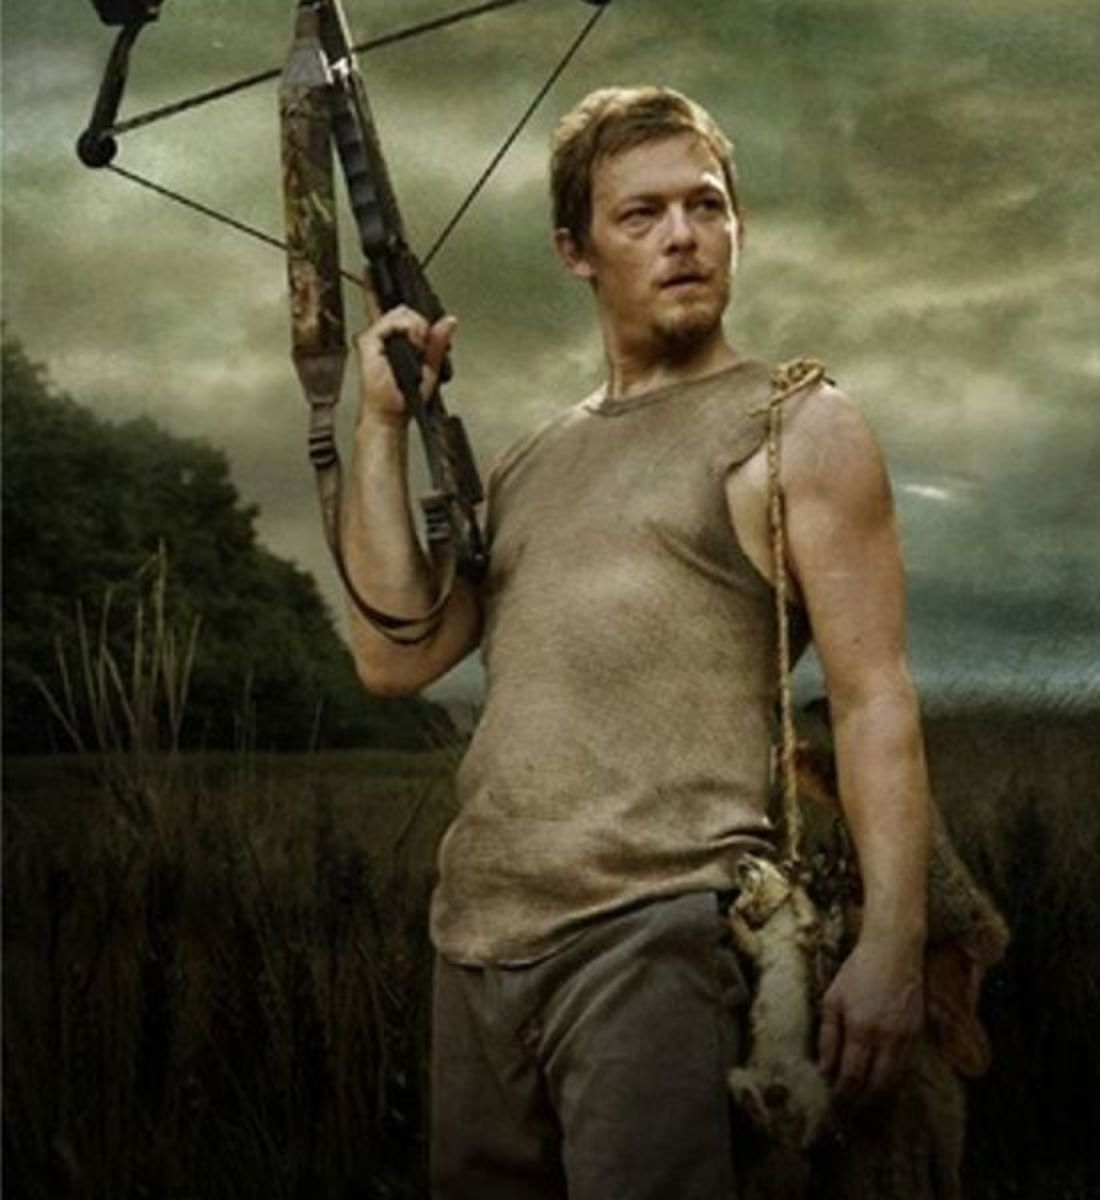 Daryl Dixon with his signature cross bow.